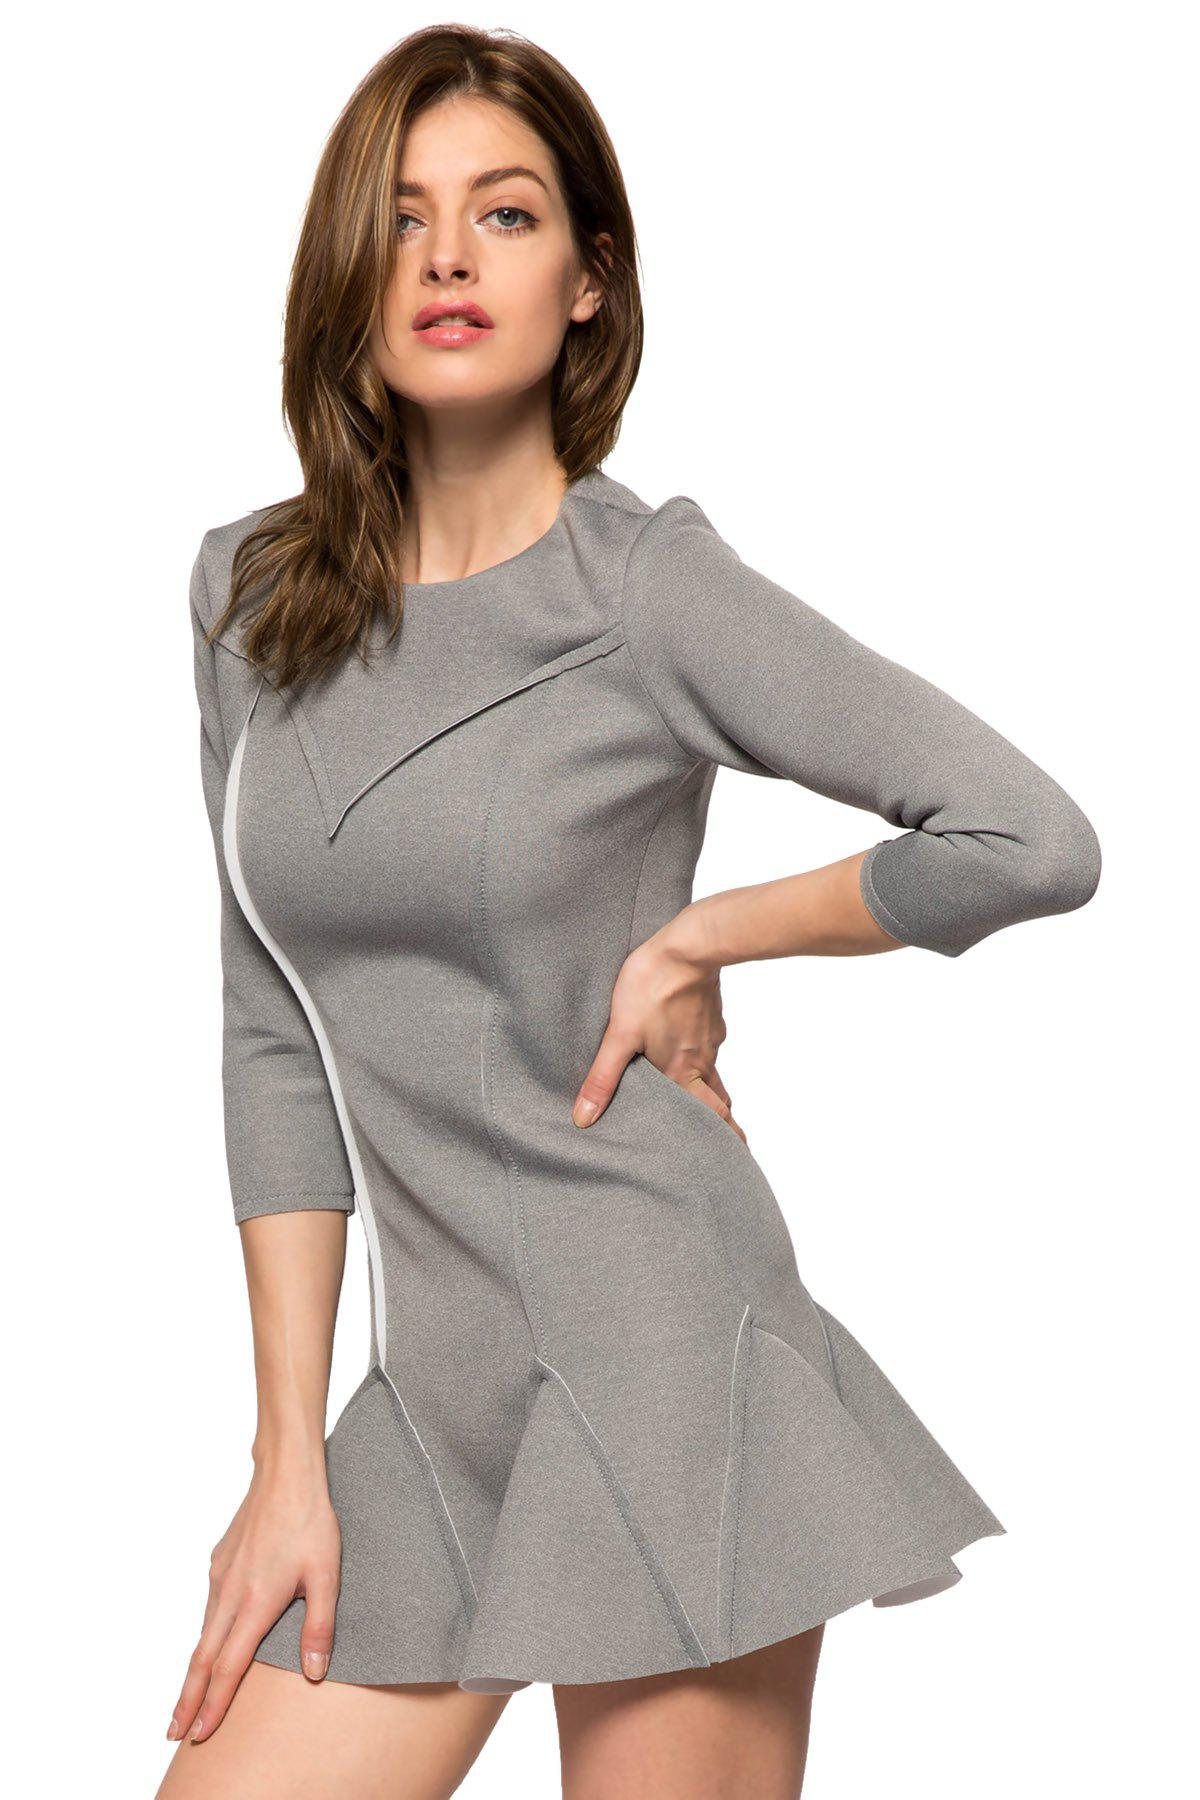 Trendy Style Round Collar 3/4 Sleeve Solid Color Ruffles Splicing Women's Dress - GRAY XL